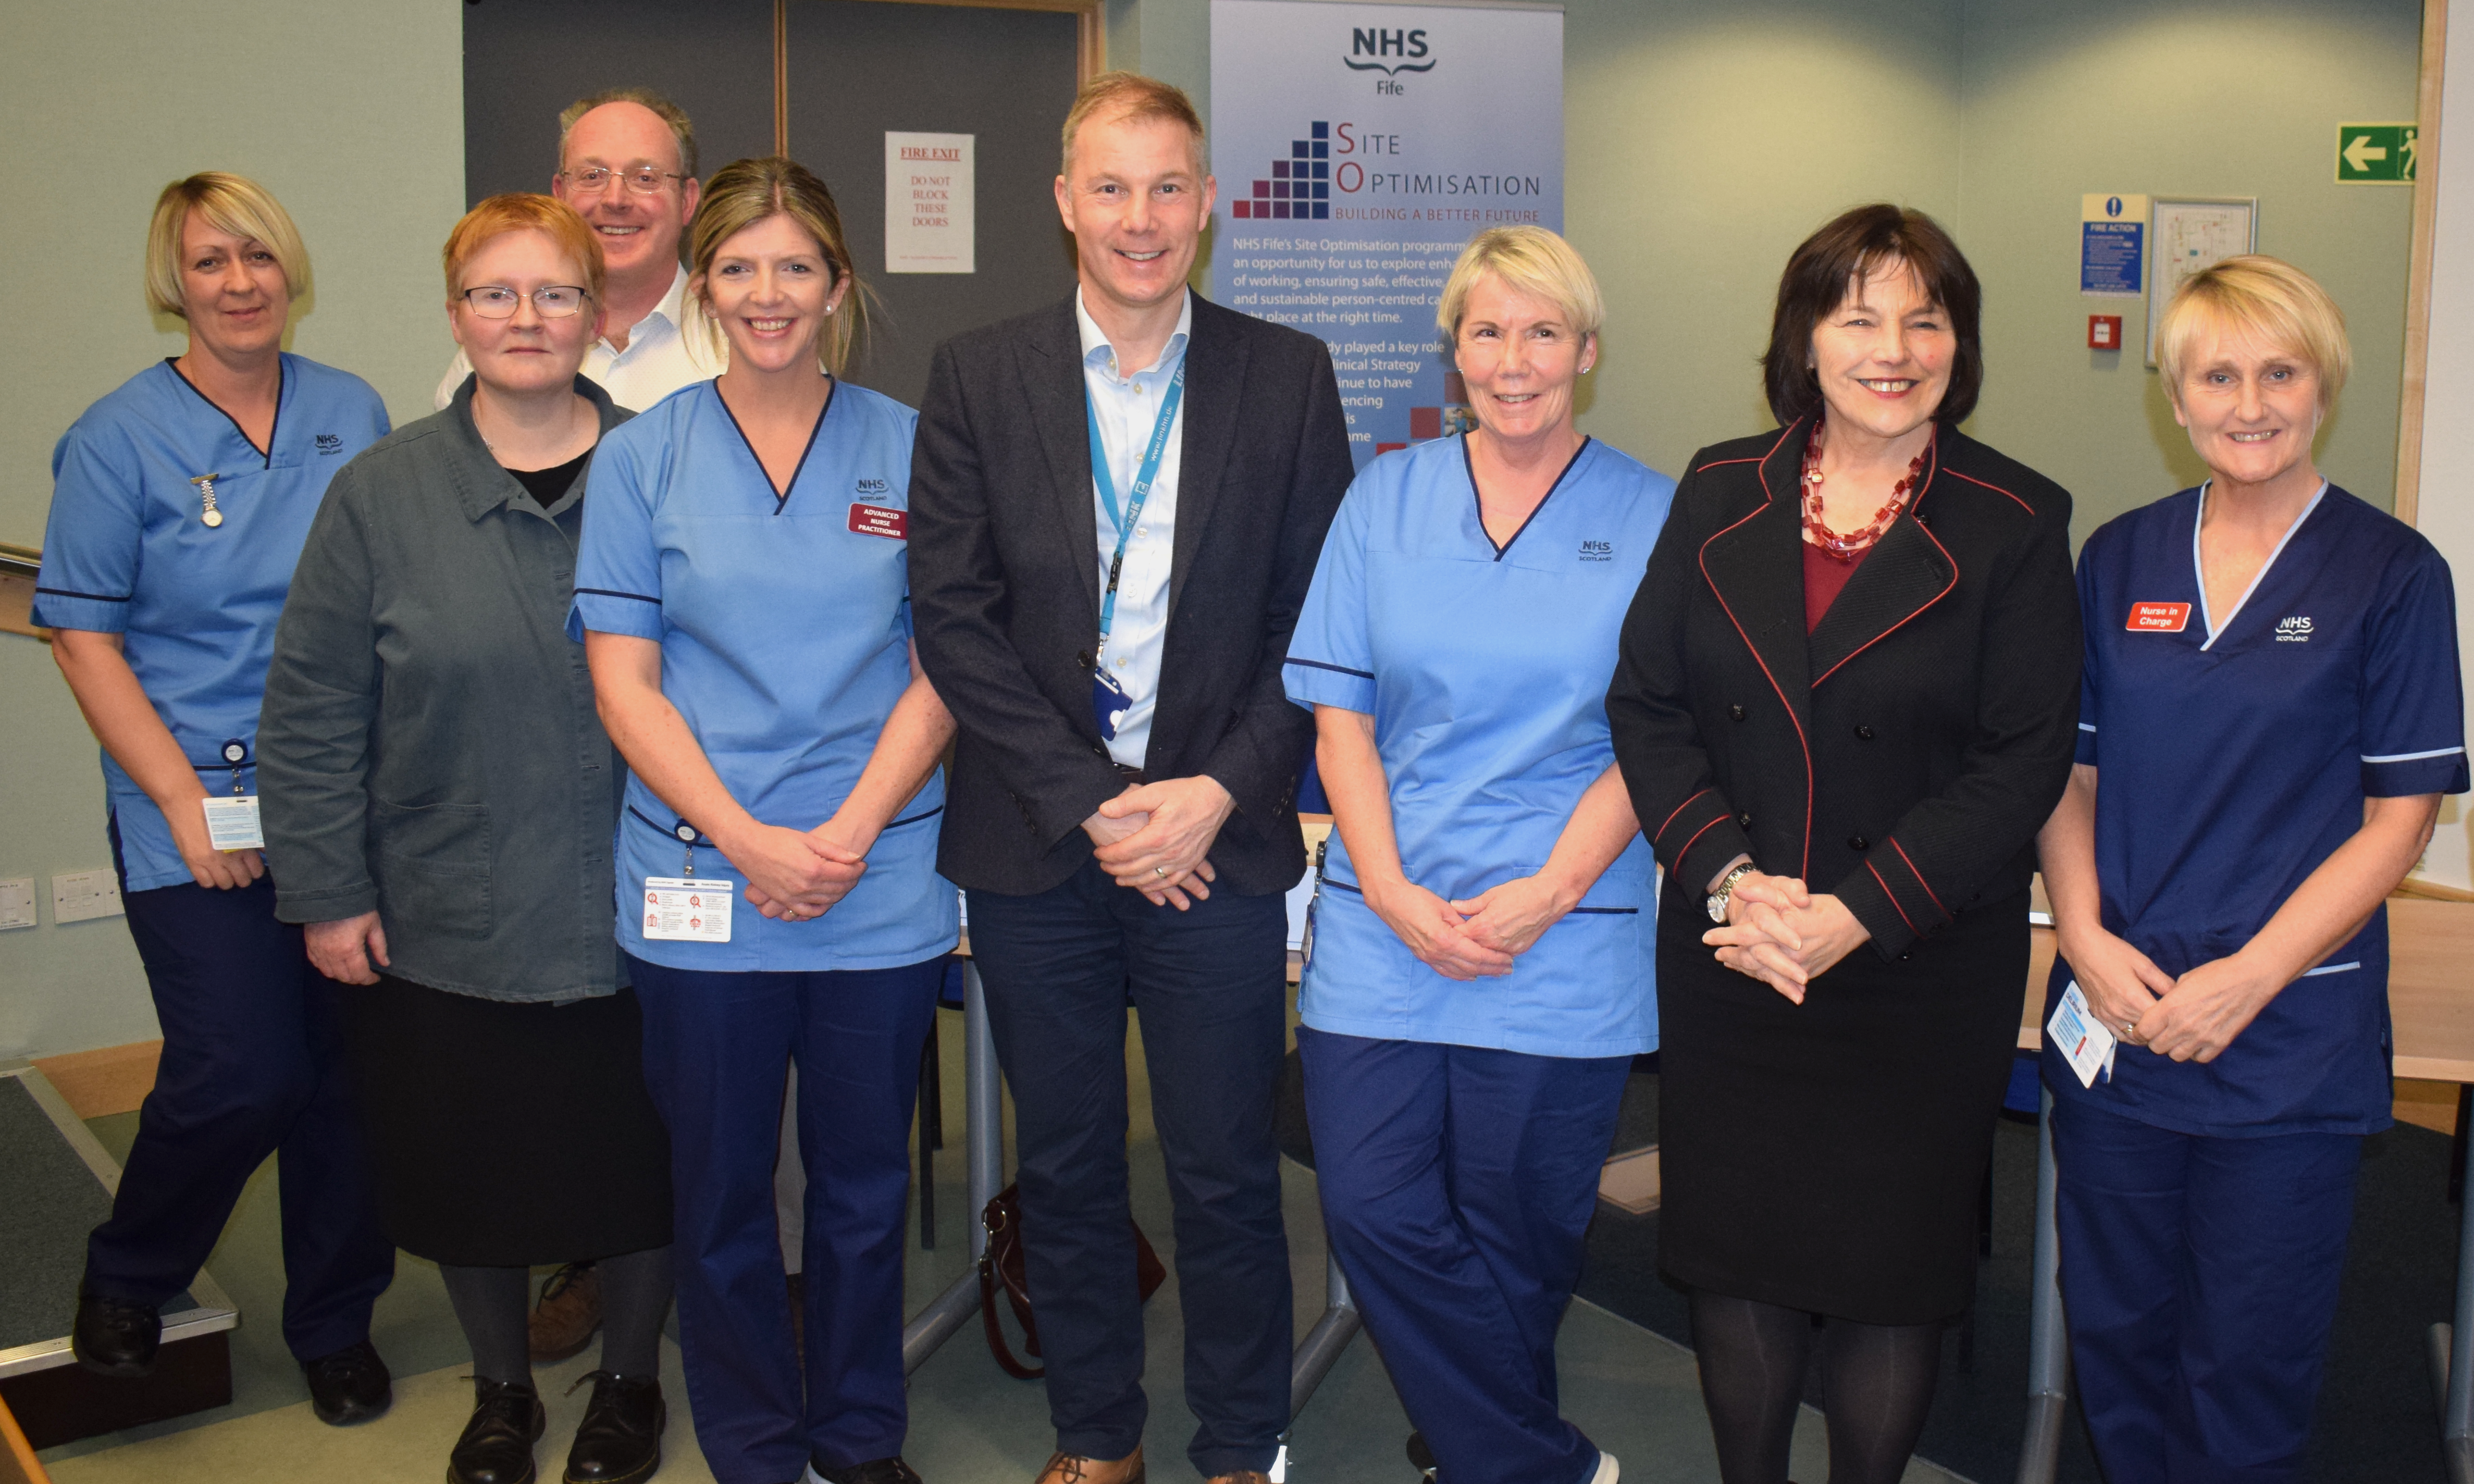 Cabinet Secretary Jeane Freeman met members of the orthopaedics team during NHS Fife annual review